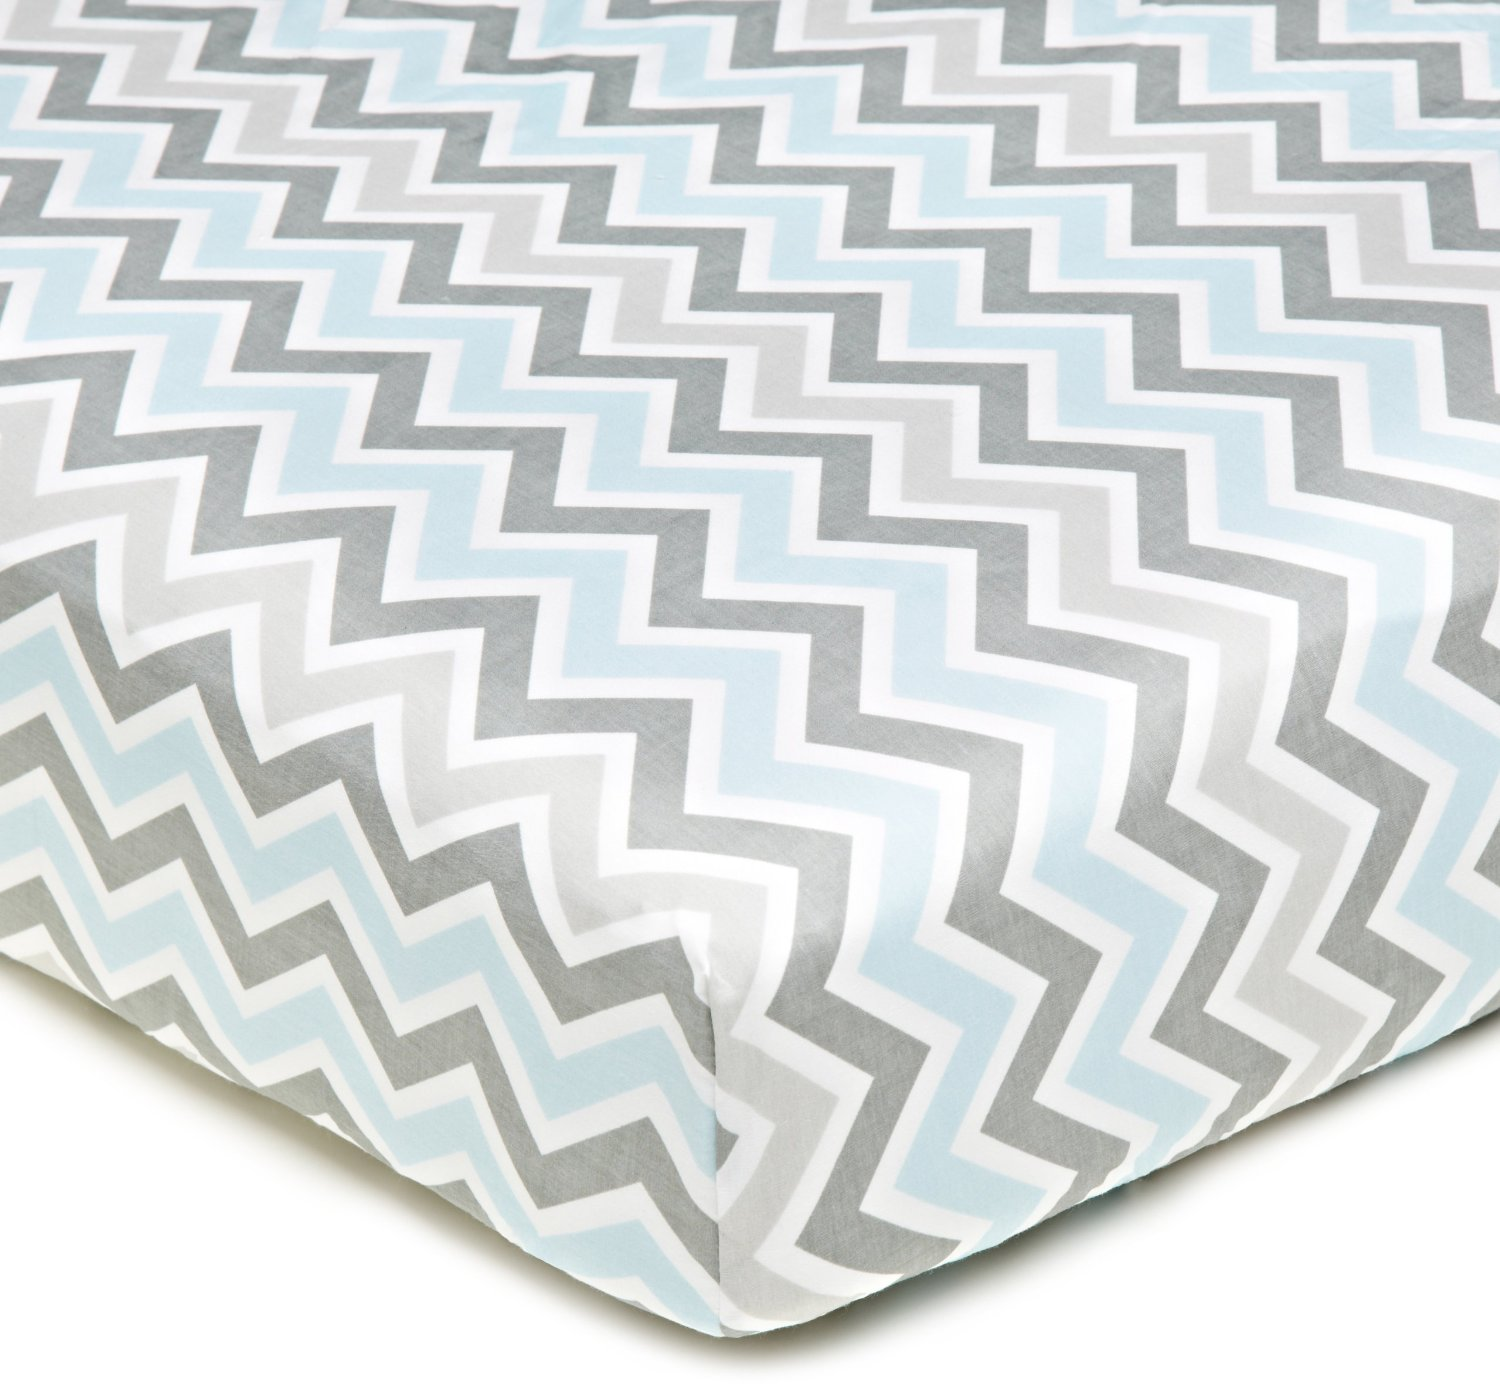 American Baby Company 1% Cotton Percale Crib Sheet - Gray Blue Zigzag